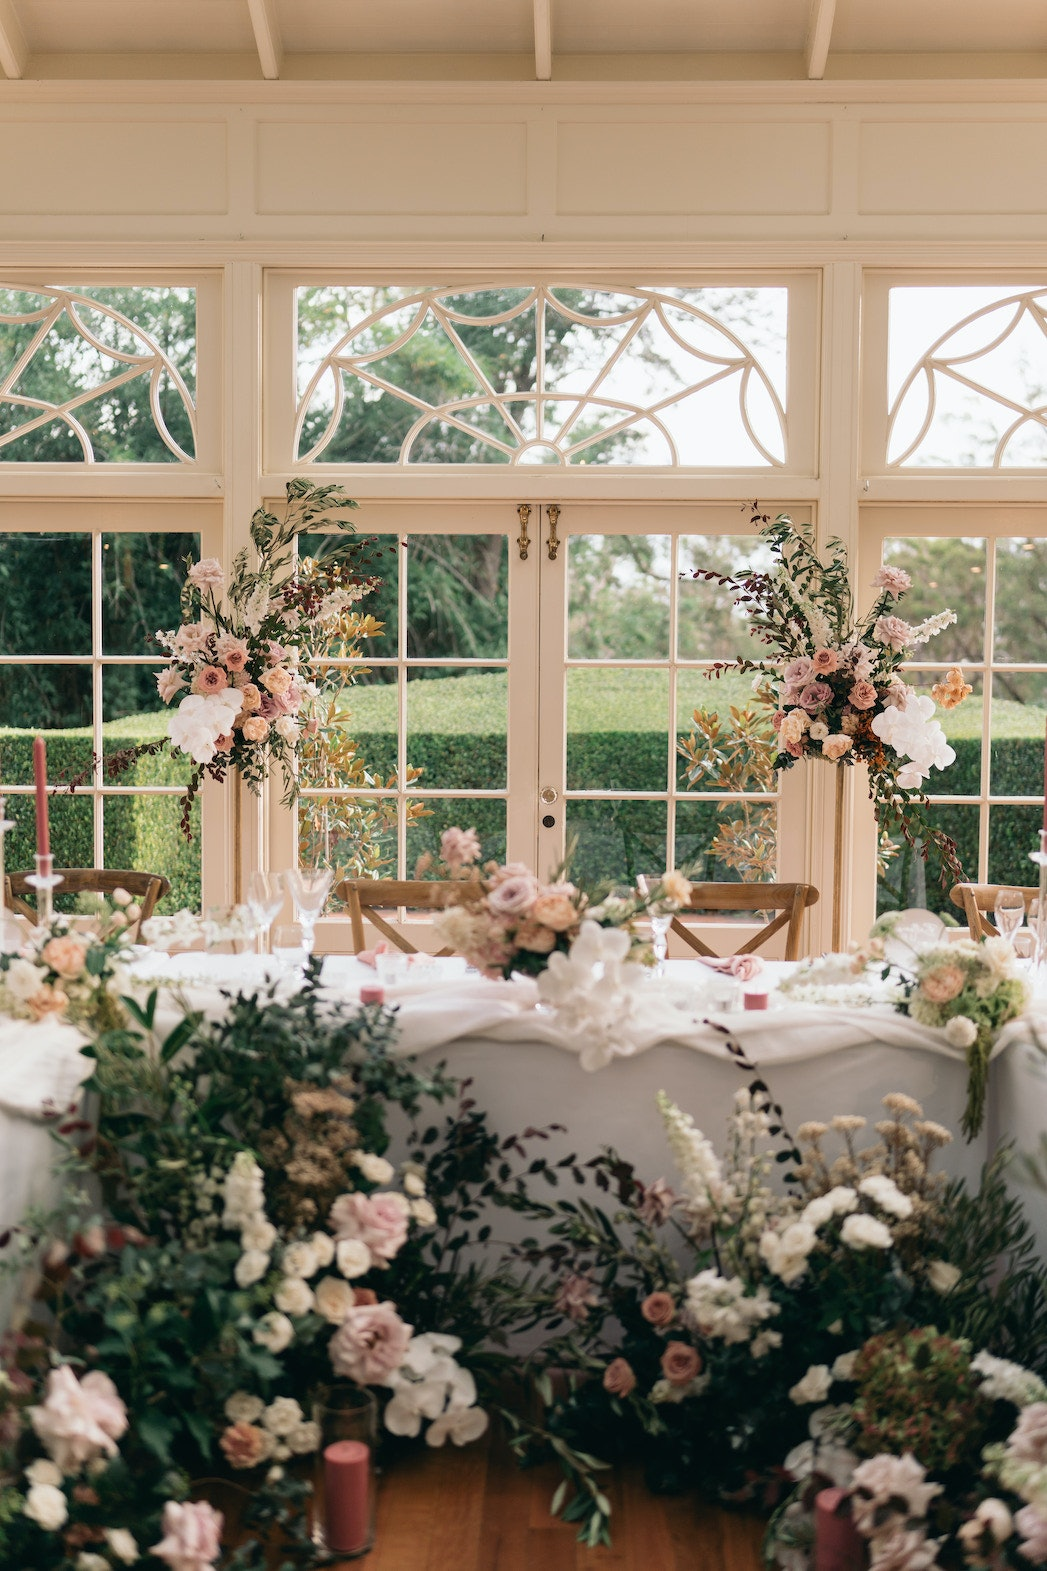 Bridal table with flowers in front